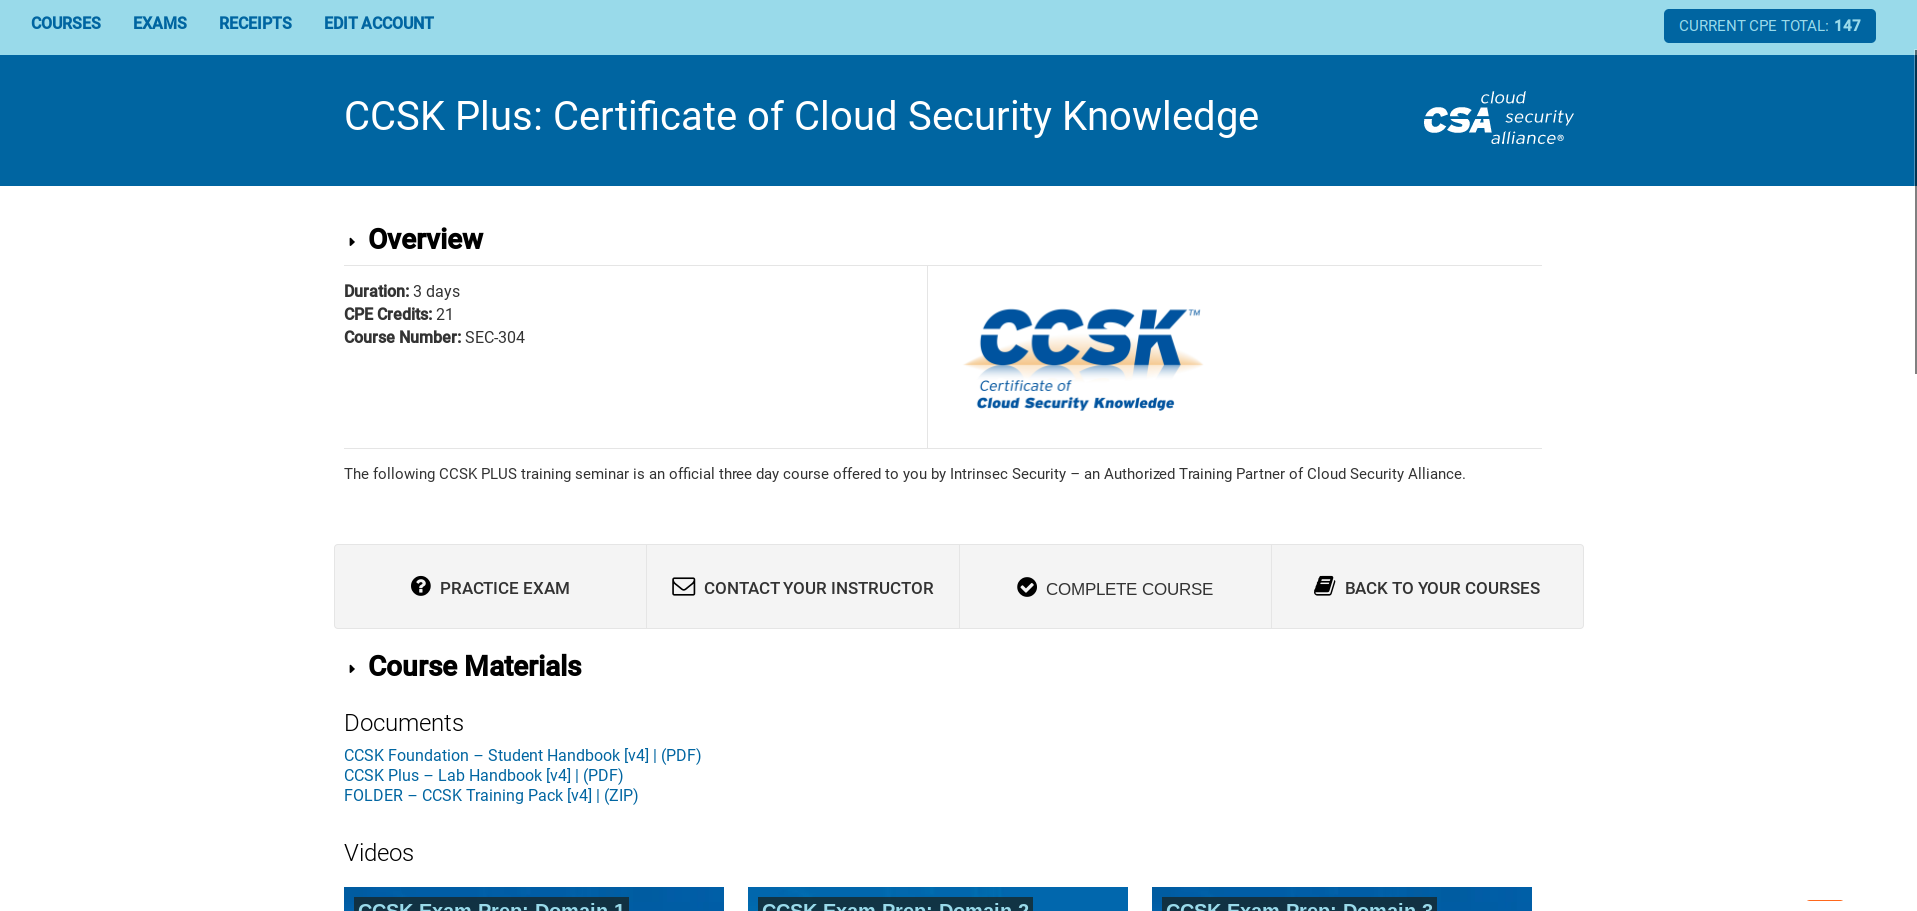 CCSK Plus: Access Class Material In Your Provided Account